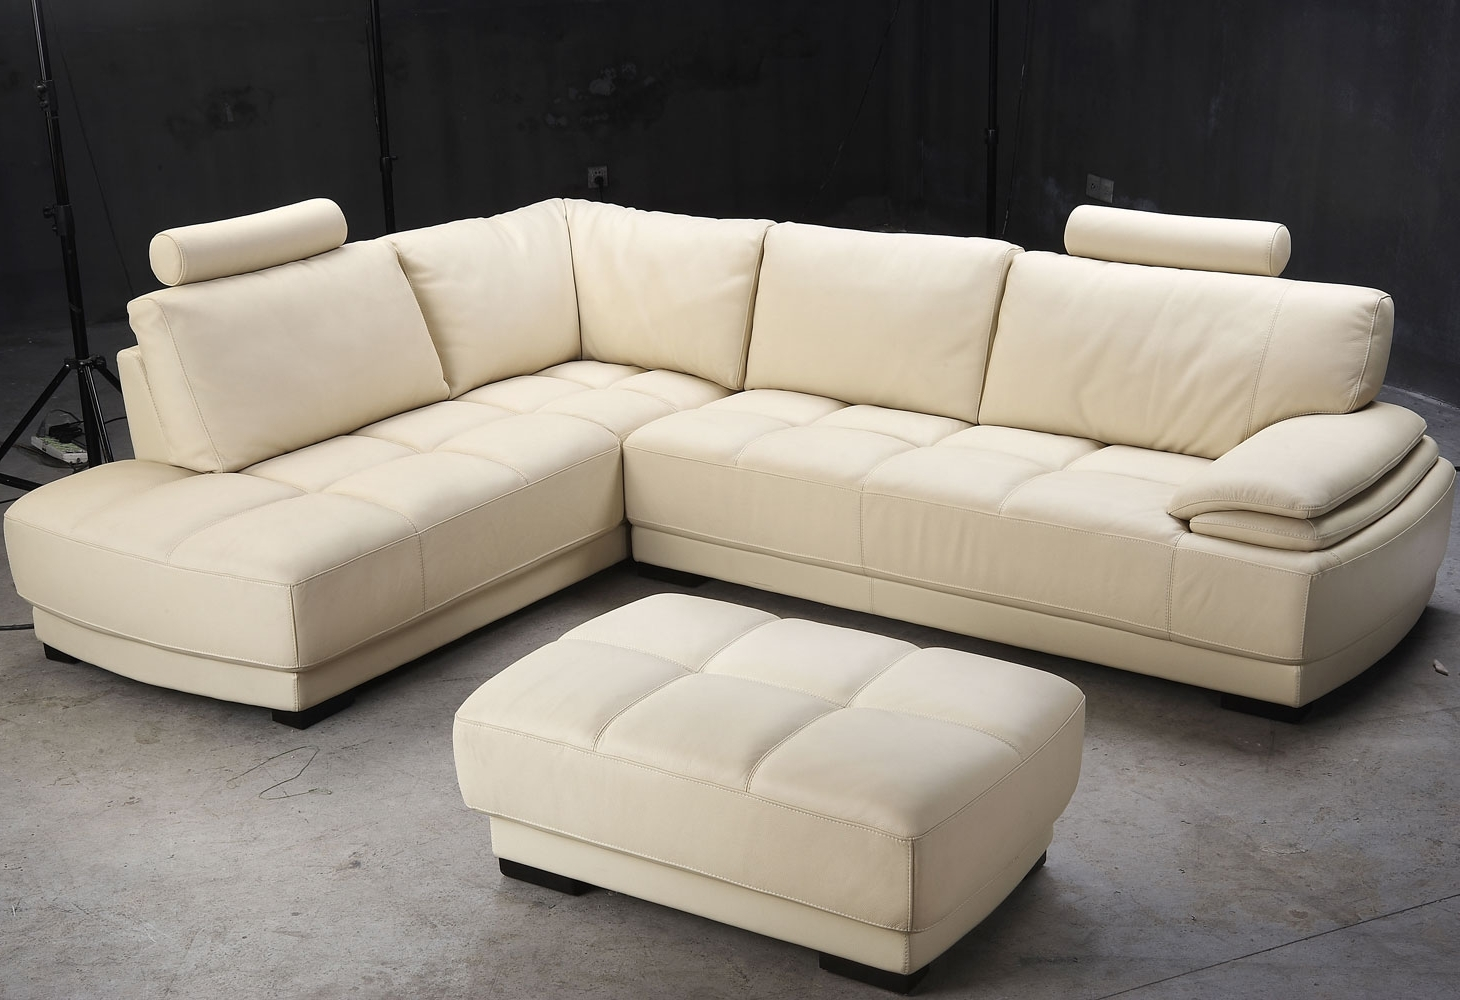 Leather L Shaped Sectional Sofas With Most Current White Ivory Leather L Shaped Sectional Sofa With Chaise Of (View 12 of 20)